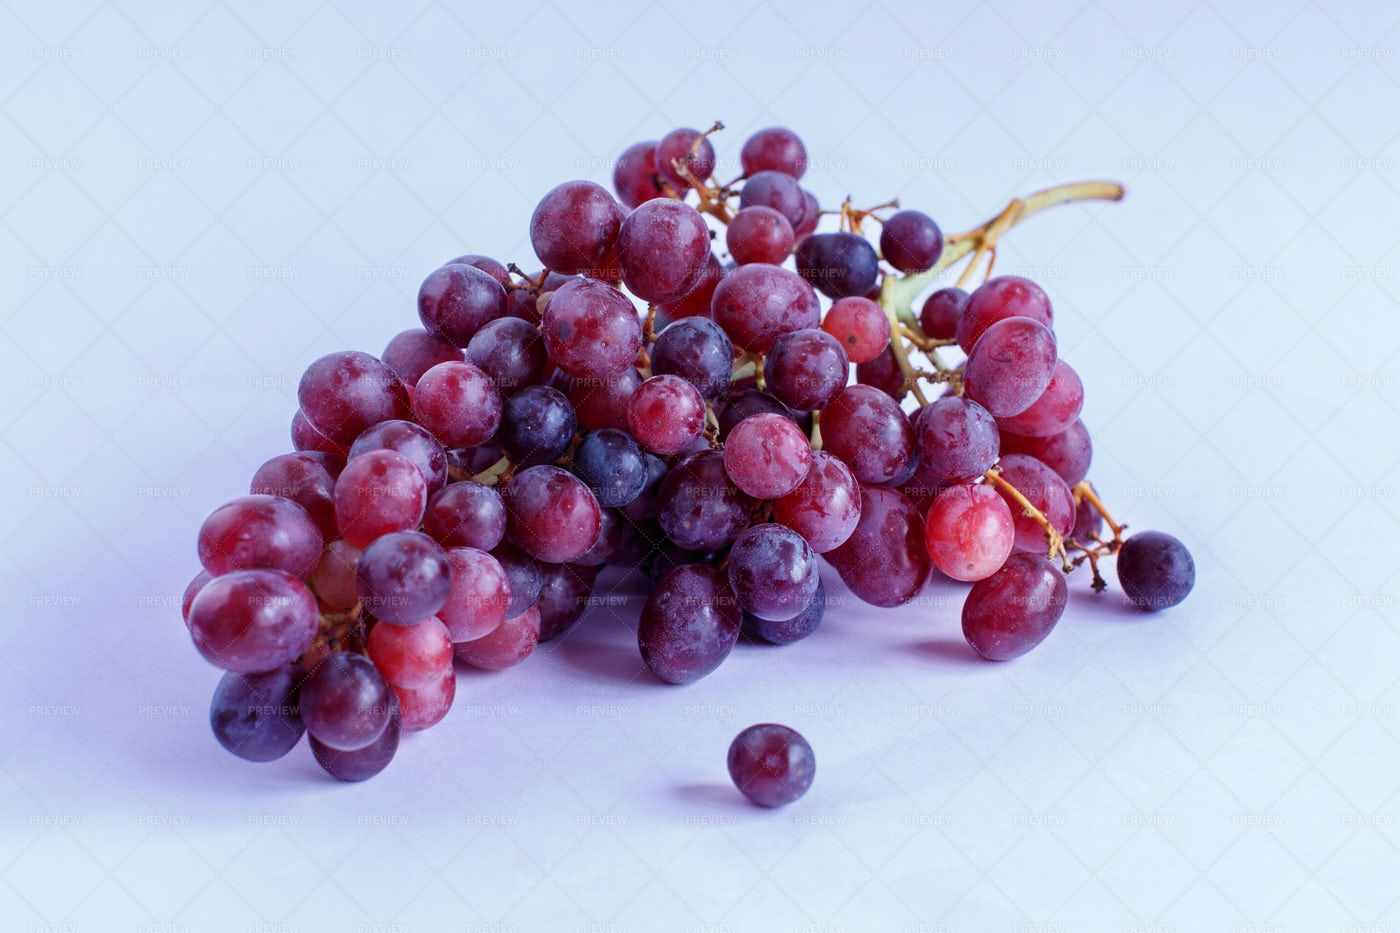 Grapes On A Light Purple Background: Stock Photos